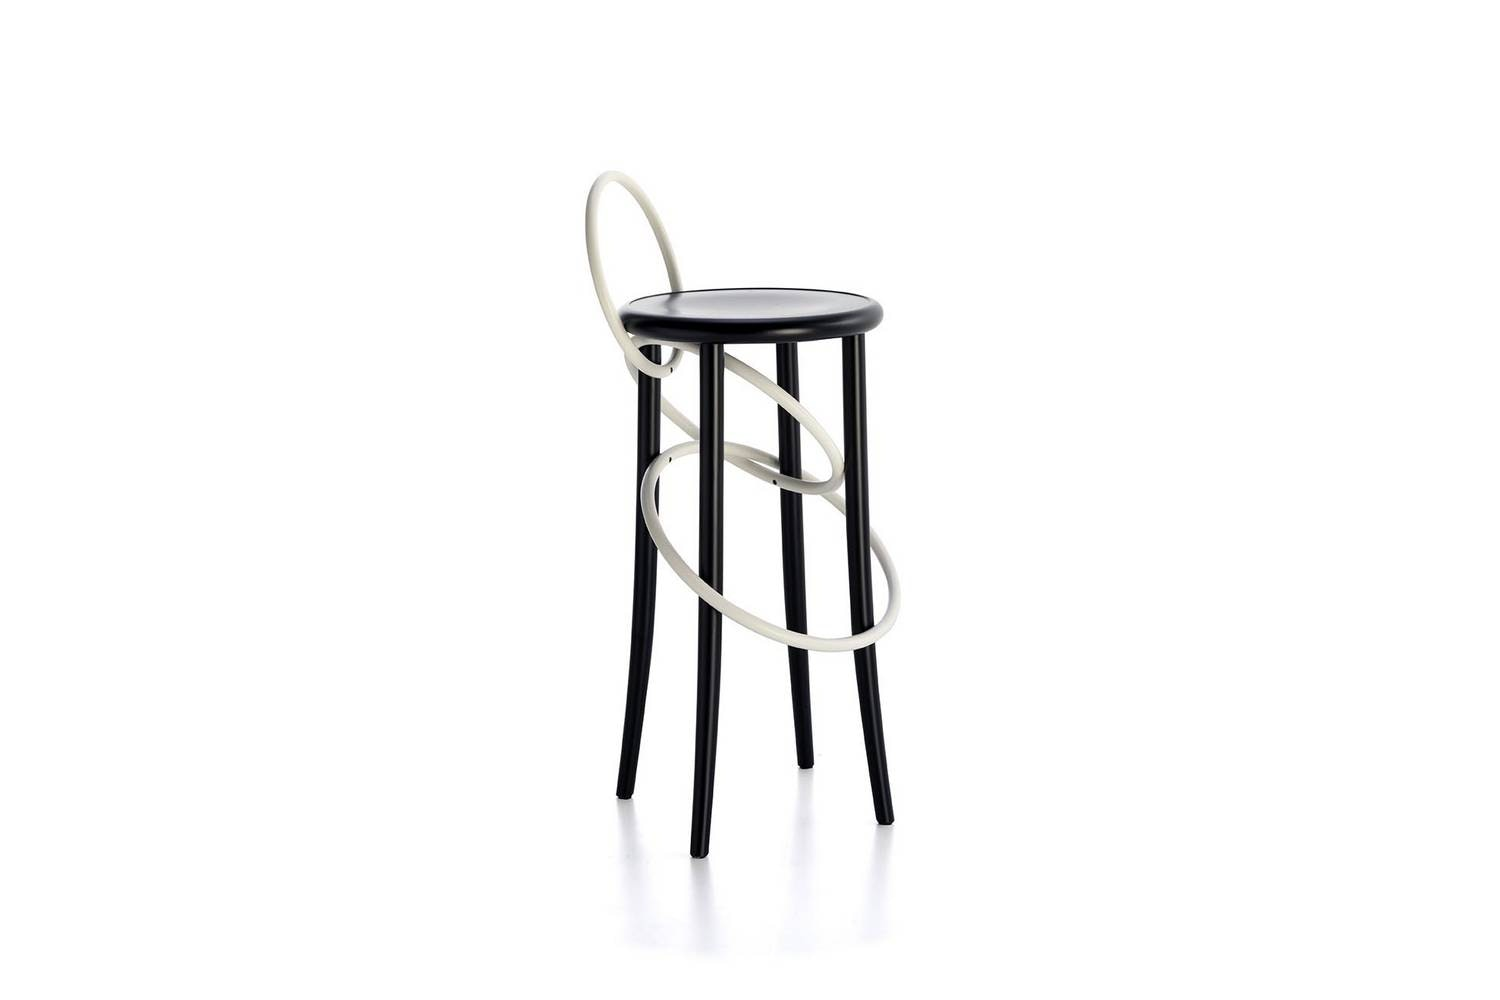 Cirque Stool by Martino Gamper for Wiener GTV Design